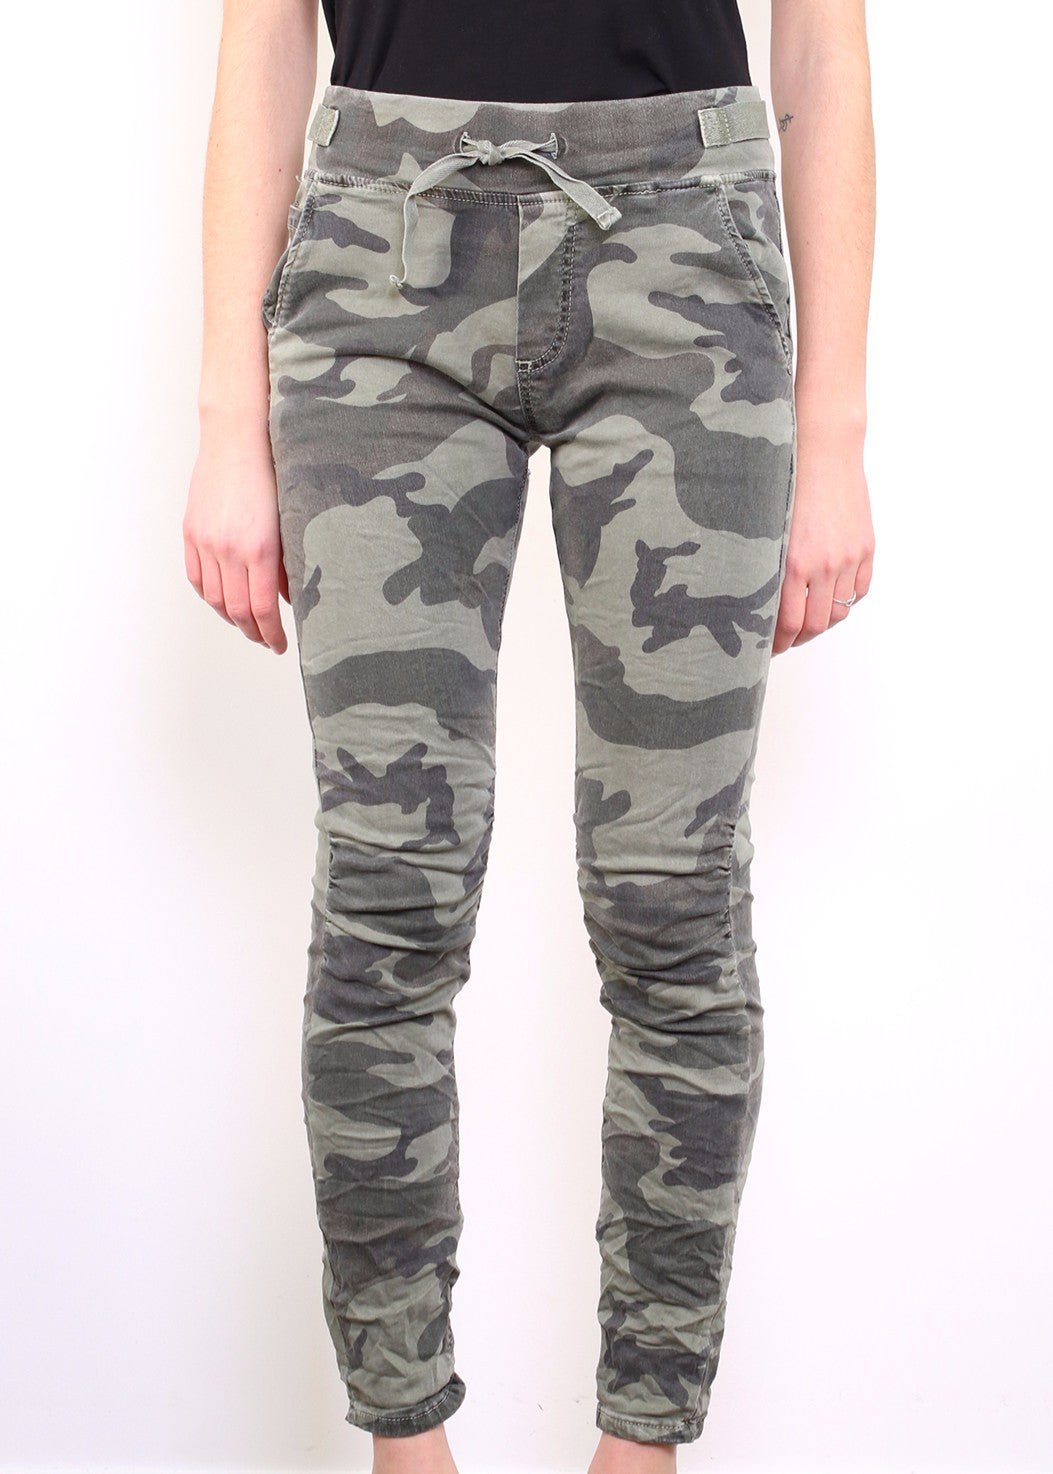 TESS - Camo Pants - SOLD OUT